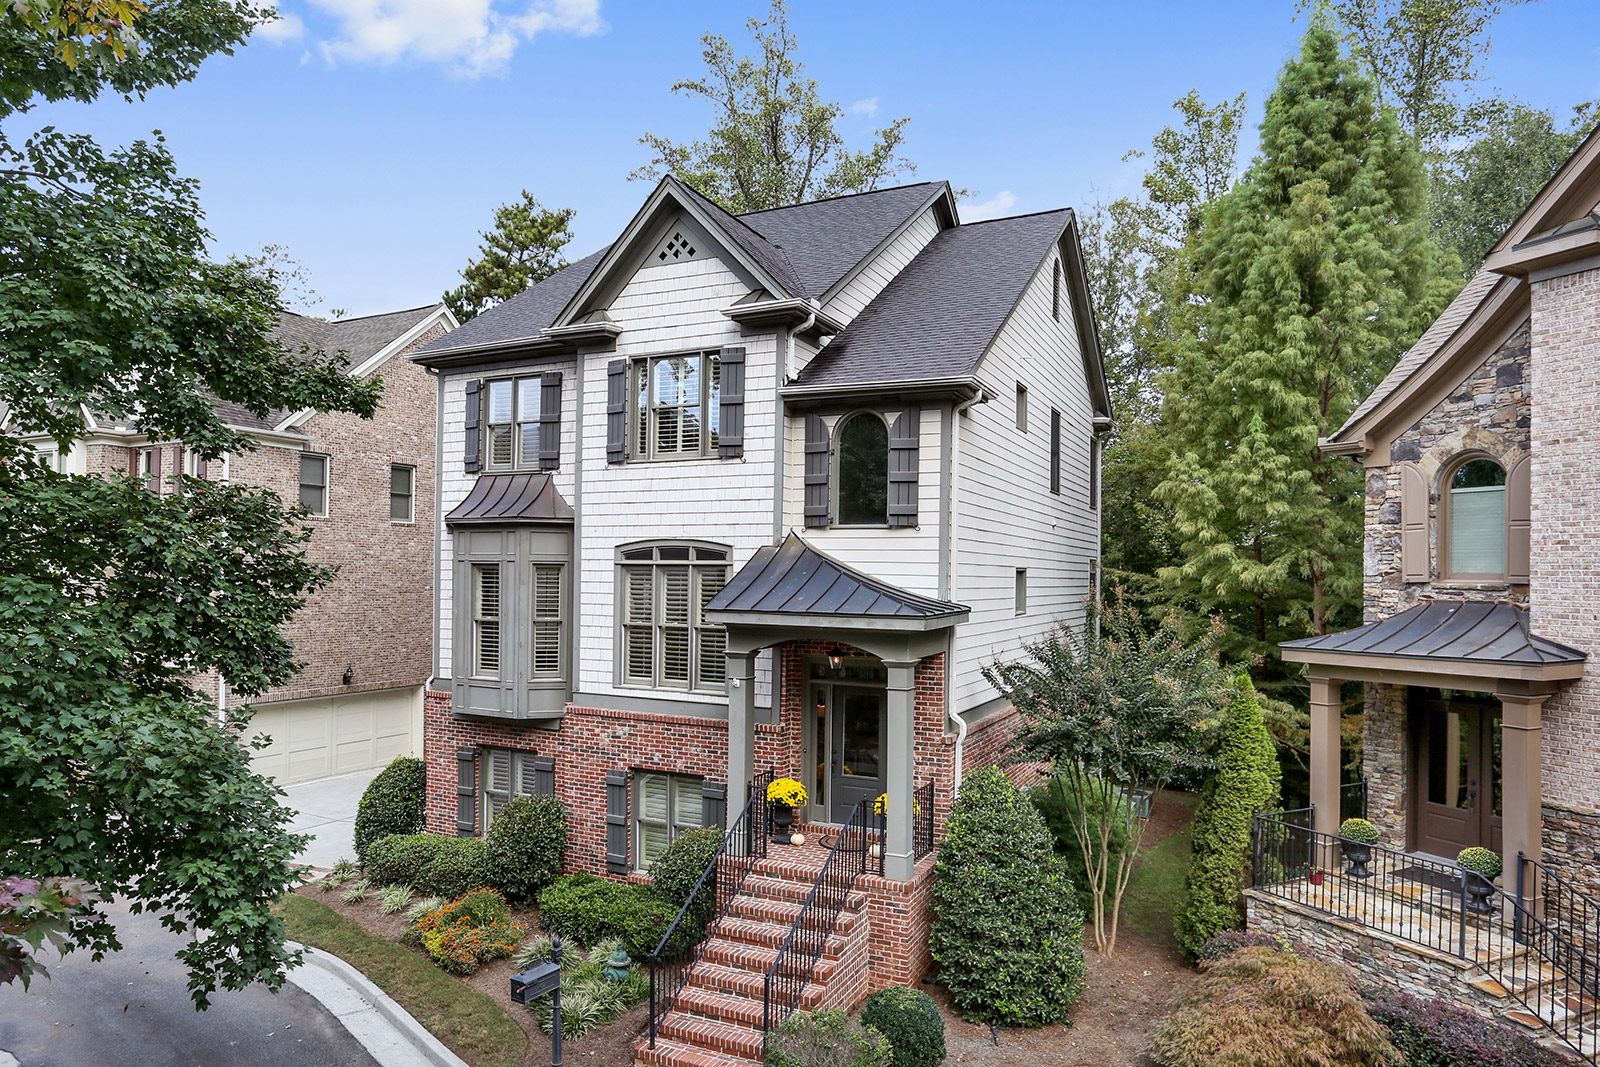 Single Family Home for Sale at Beautiful Home in Desireable Sandy Springs 1012 Madeline Lane Atlanta, Georgia 30350 United States